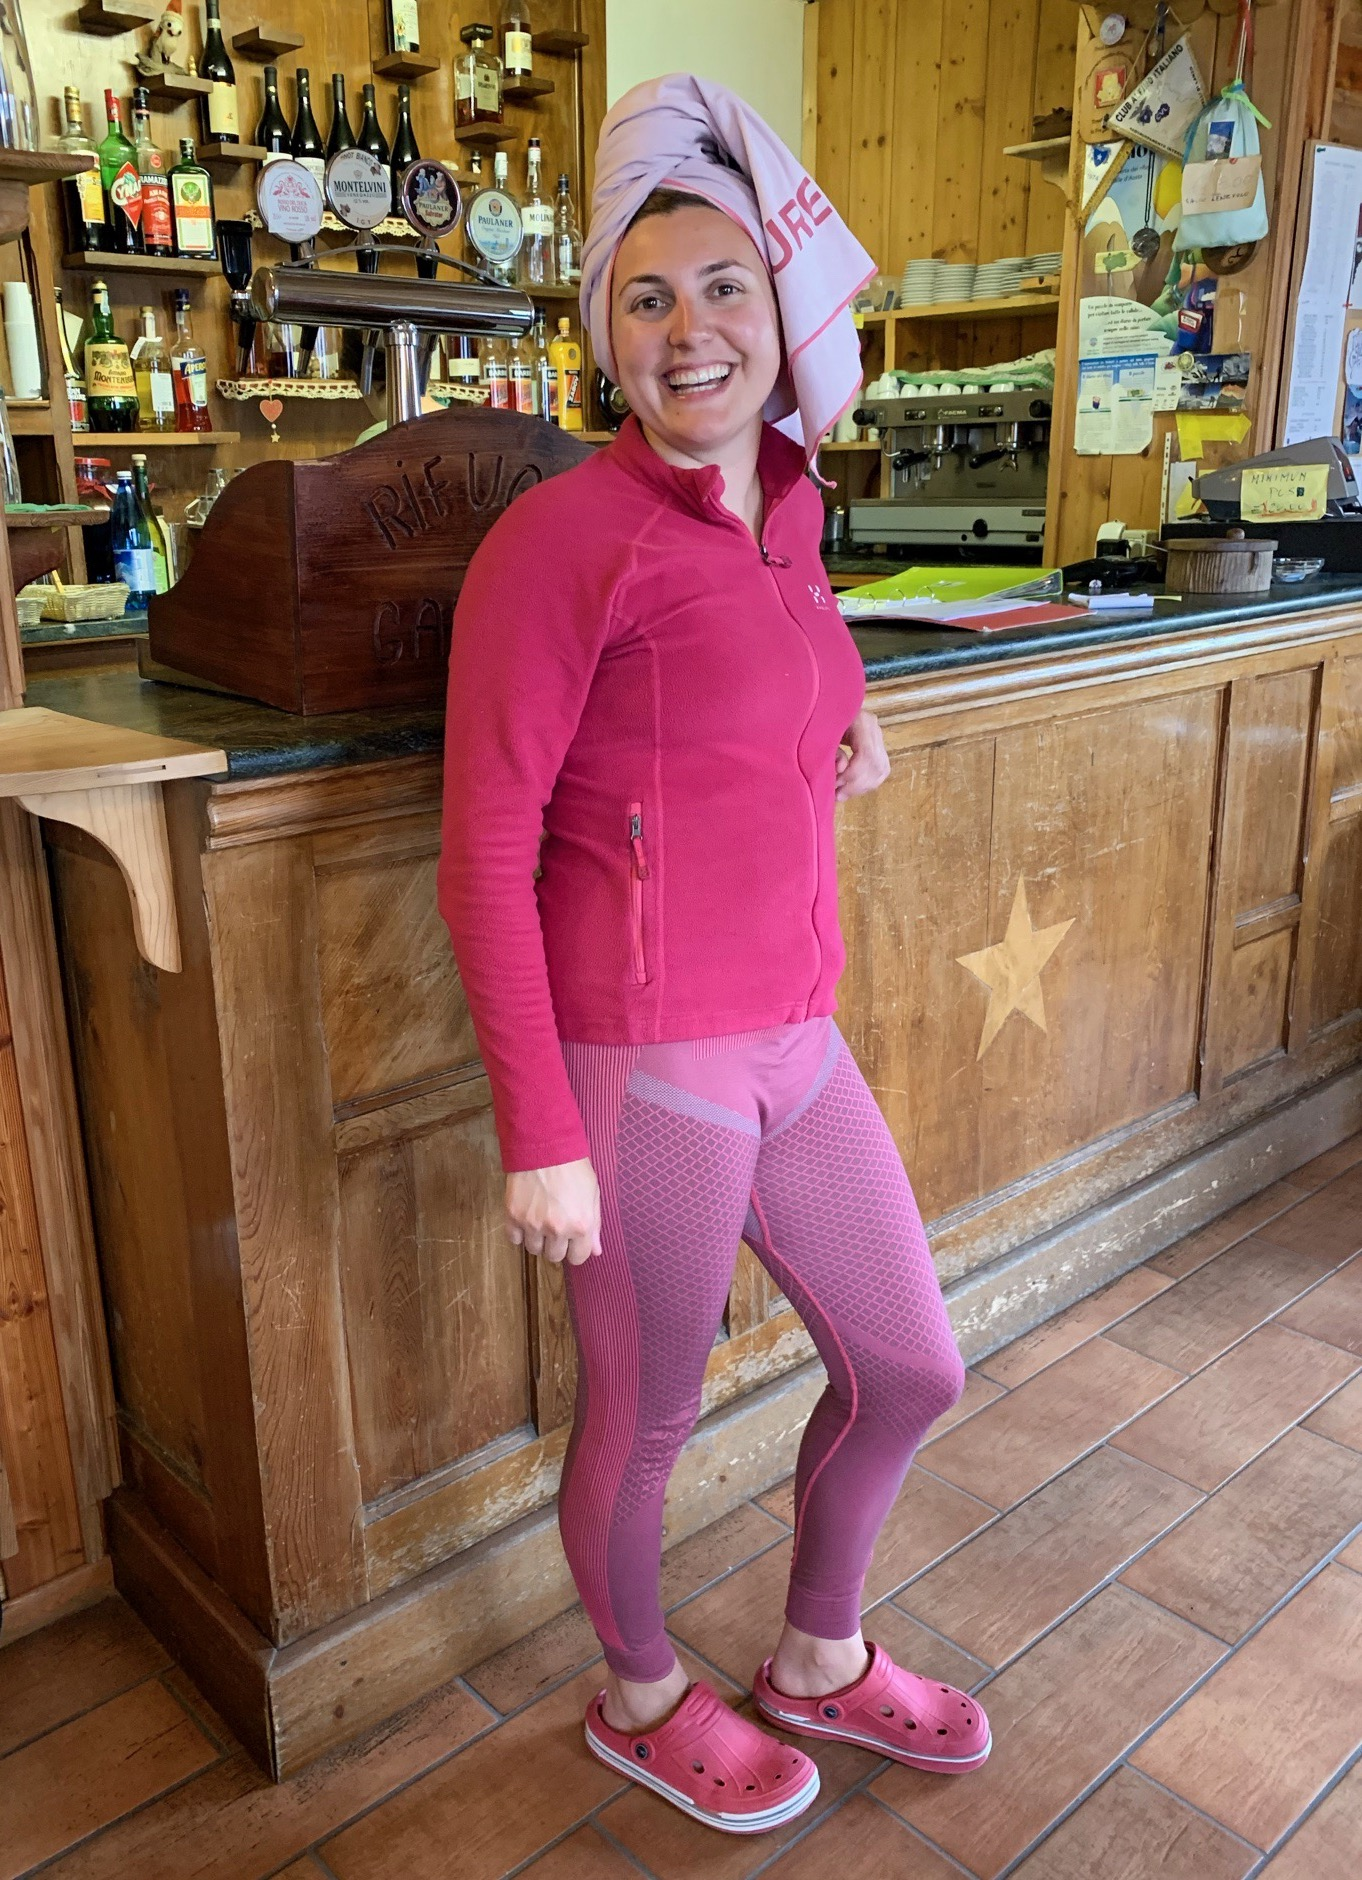 Girl standing in a mountain hut in front of a bar wearing a pink travel towel on her head, pink fleece, pink leggings and pink crocs. She is smiling directly at the camera and laughing. Glacier hiking alps.